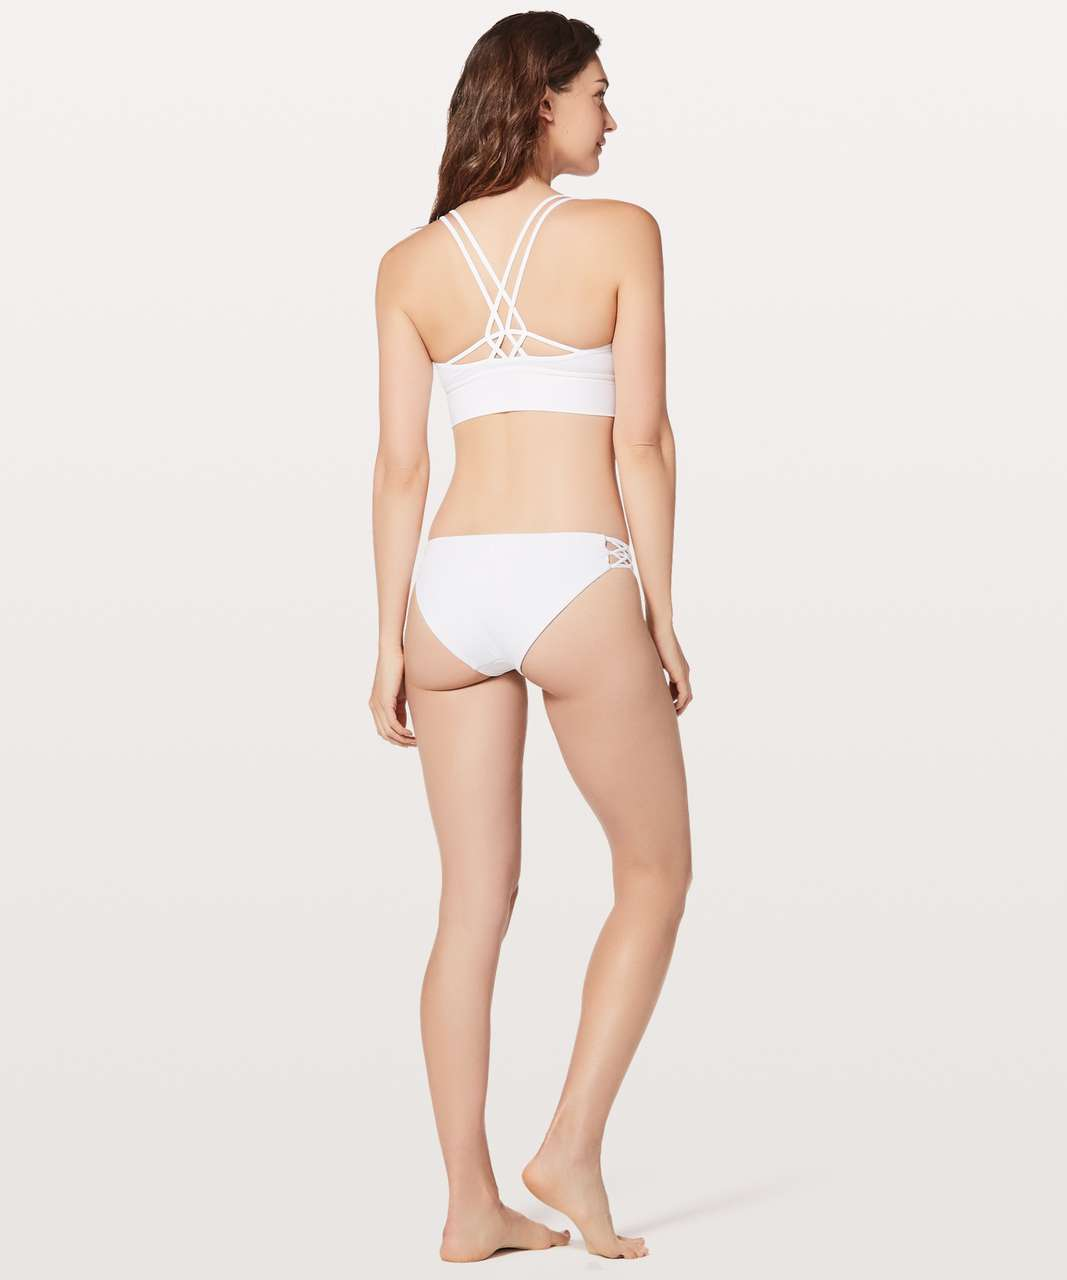 02709c0f4 Lululemon Coastline Top - White - lulu fanatics